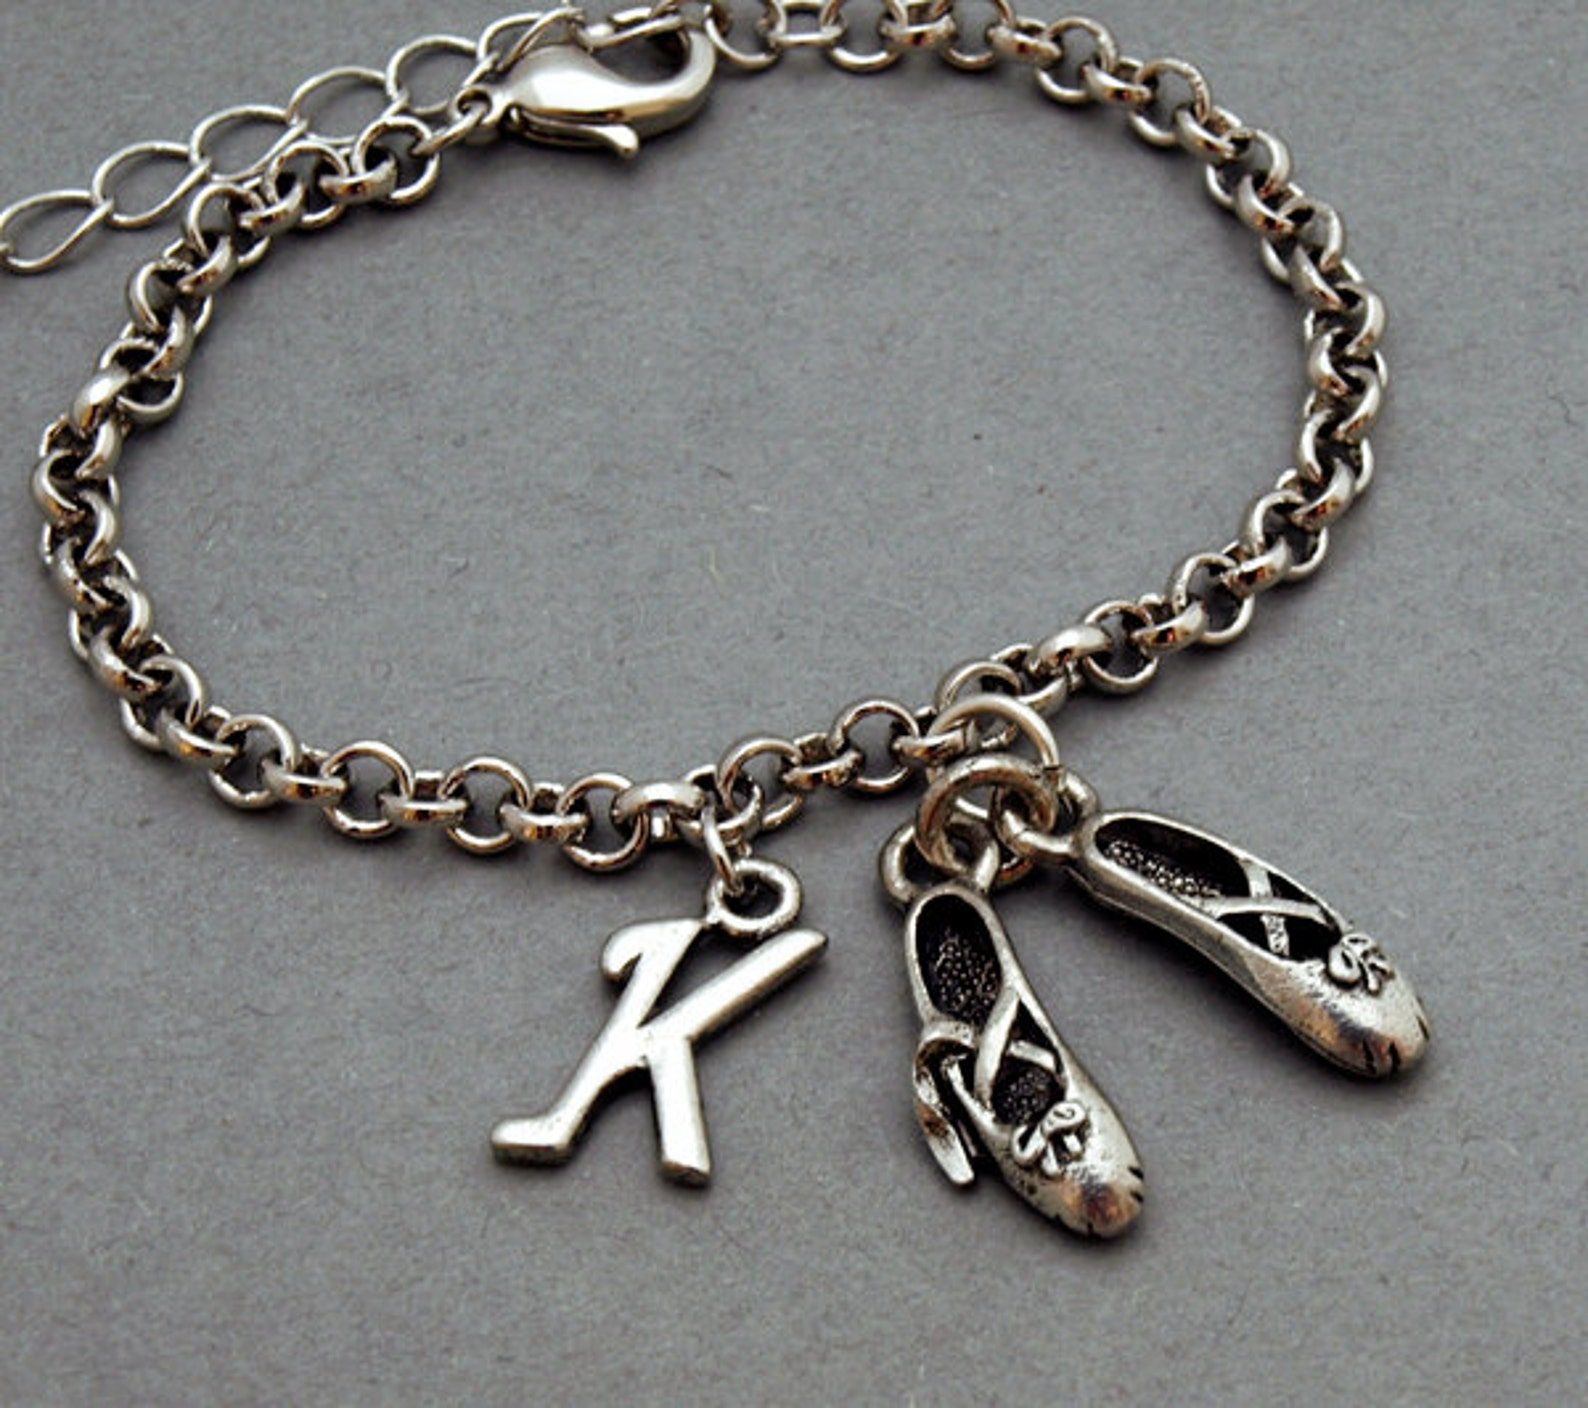 ballet shoes charm bracelet, ballet slippers, antique silver, initial bracelet, friendship, mothers, adjustable, monogram